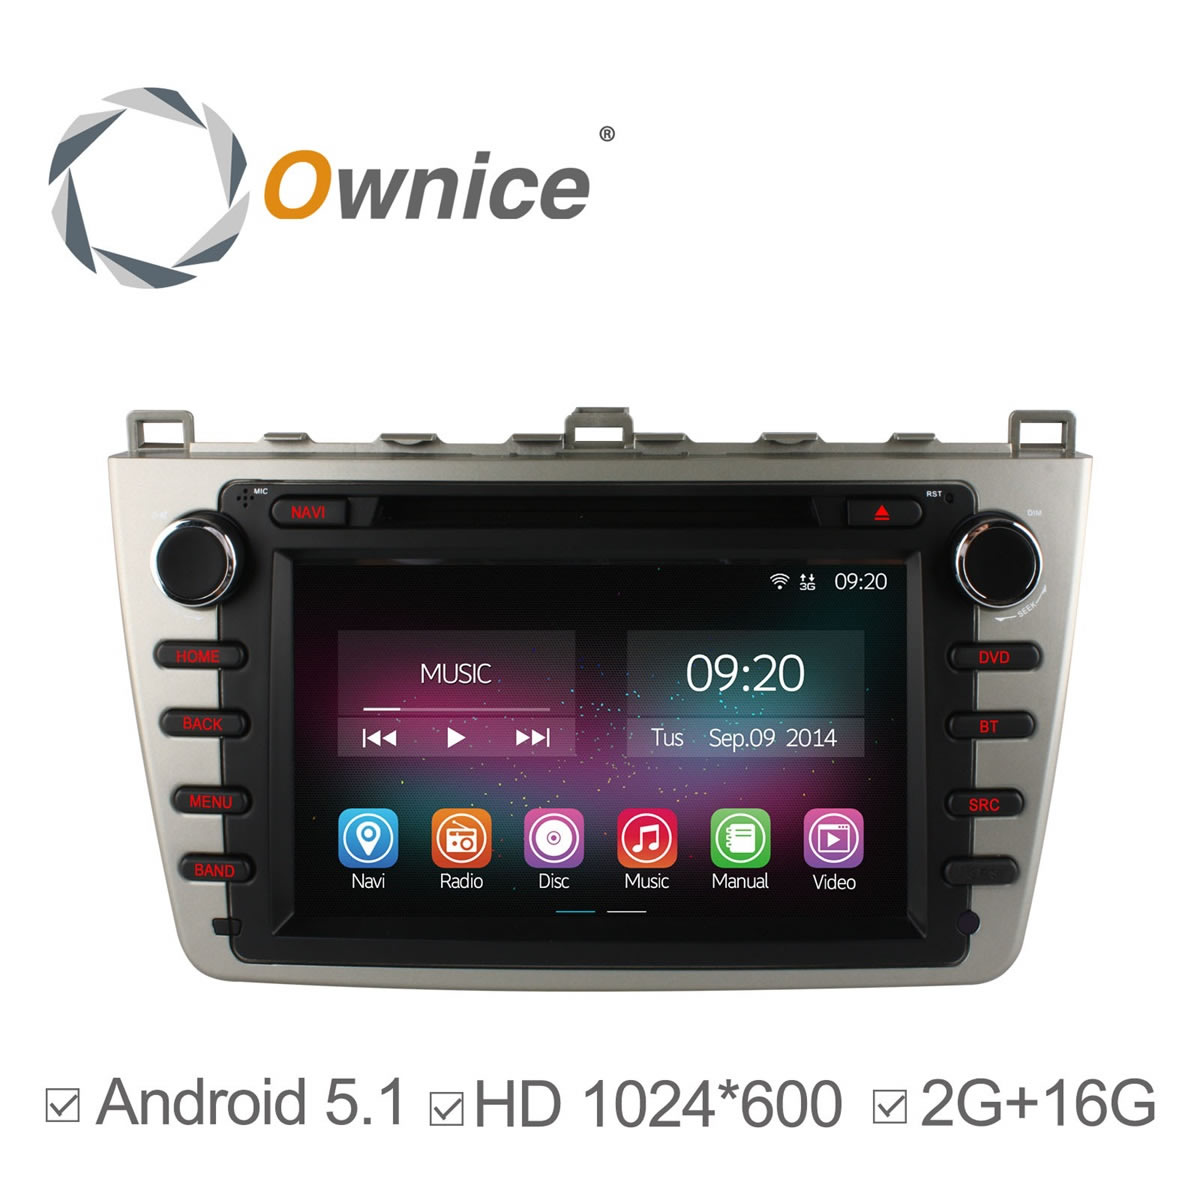 "8"" Android 5.1 4 Core Car DVD Player for Mazda 6 Ruiyi 2009 2010 2011 2012 2015 GPS Navigation Radio Bluetooth 1024*600 2G/16GB(China (Mainland))"